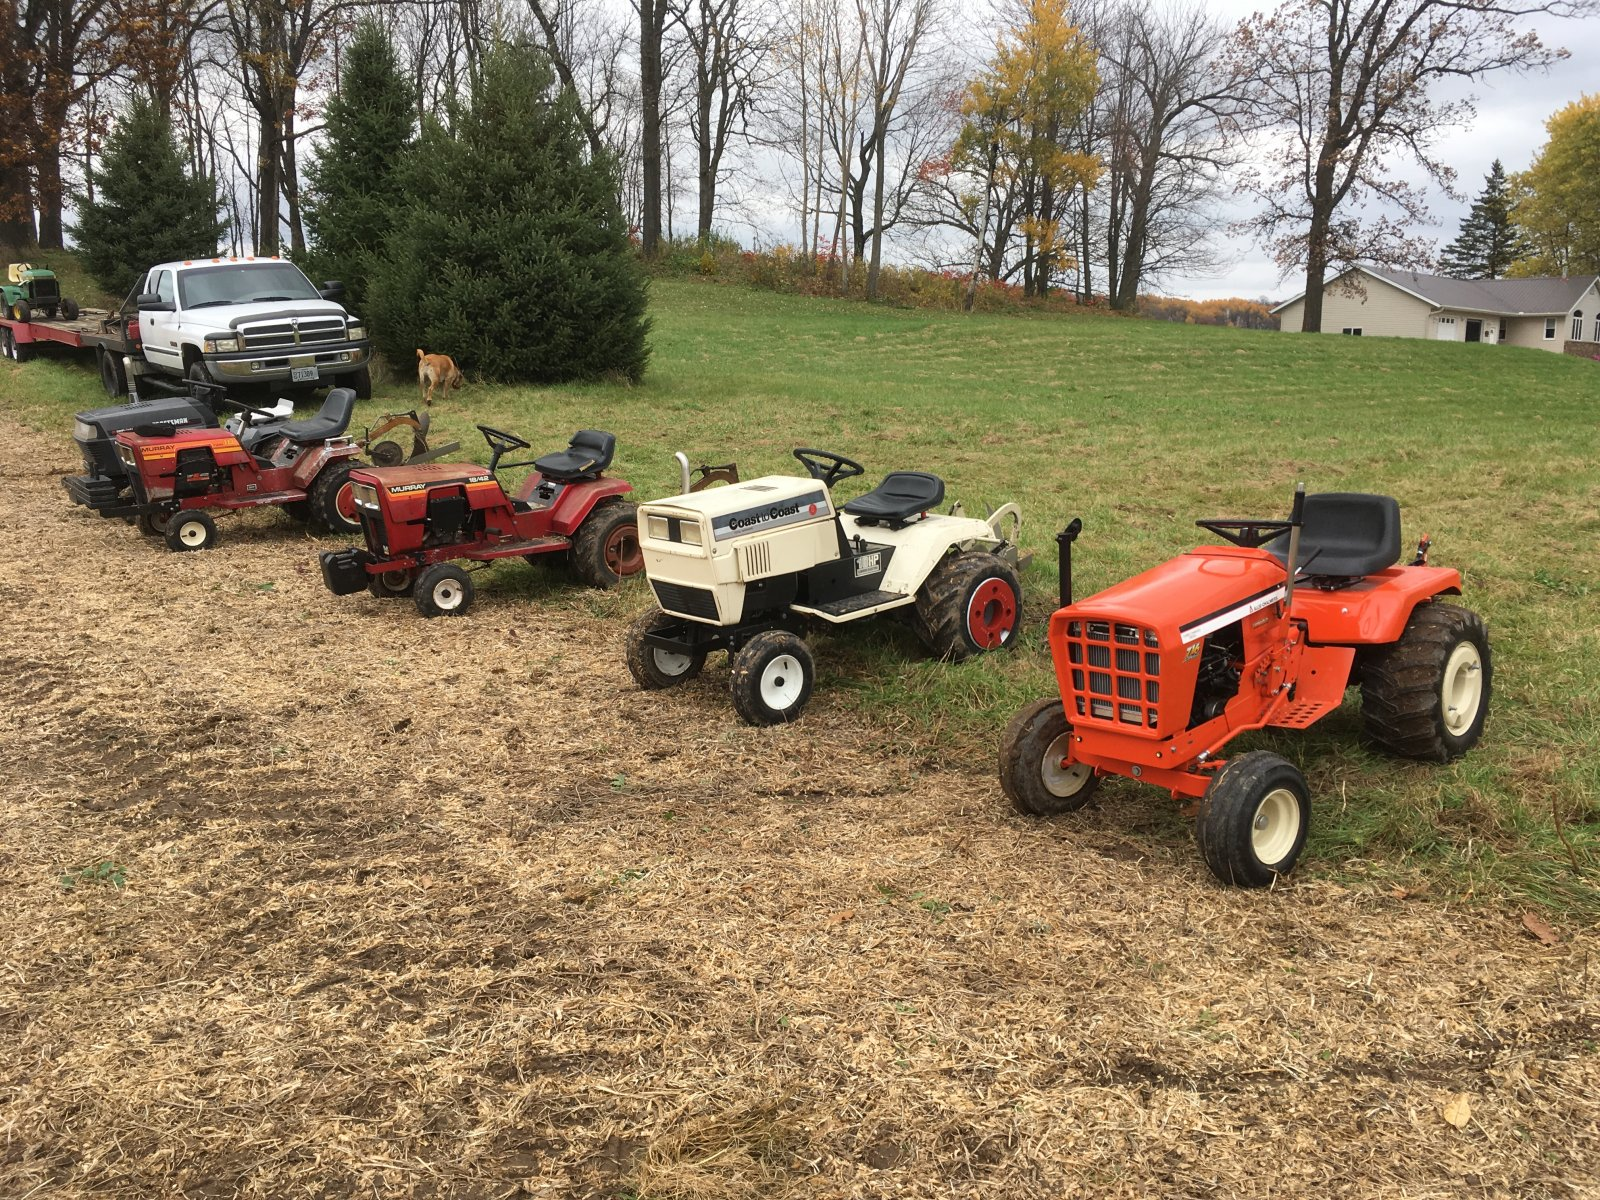 Knapp Plow Day - Show & Tell - Simple trACtors